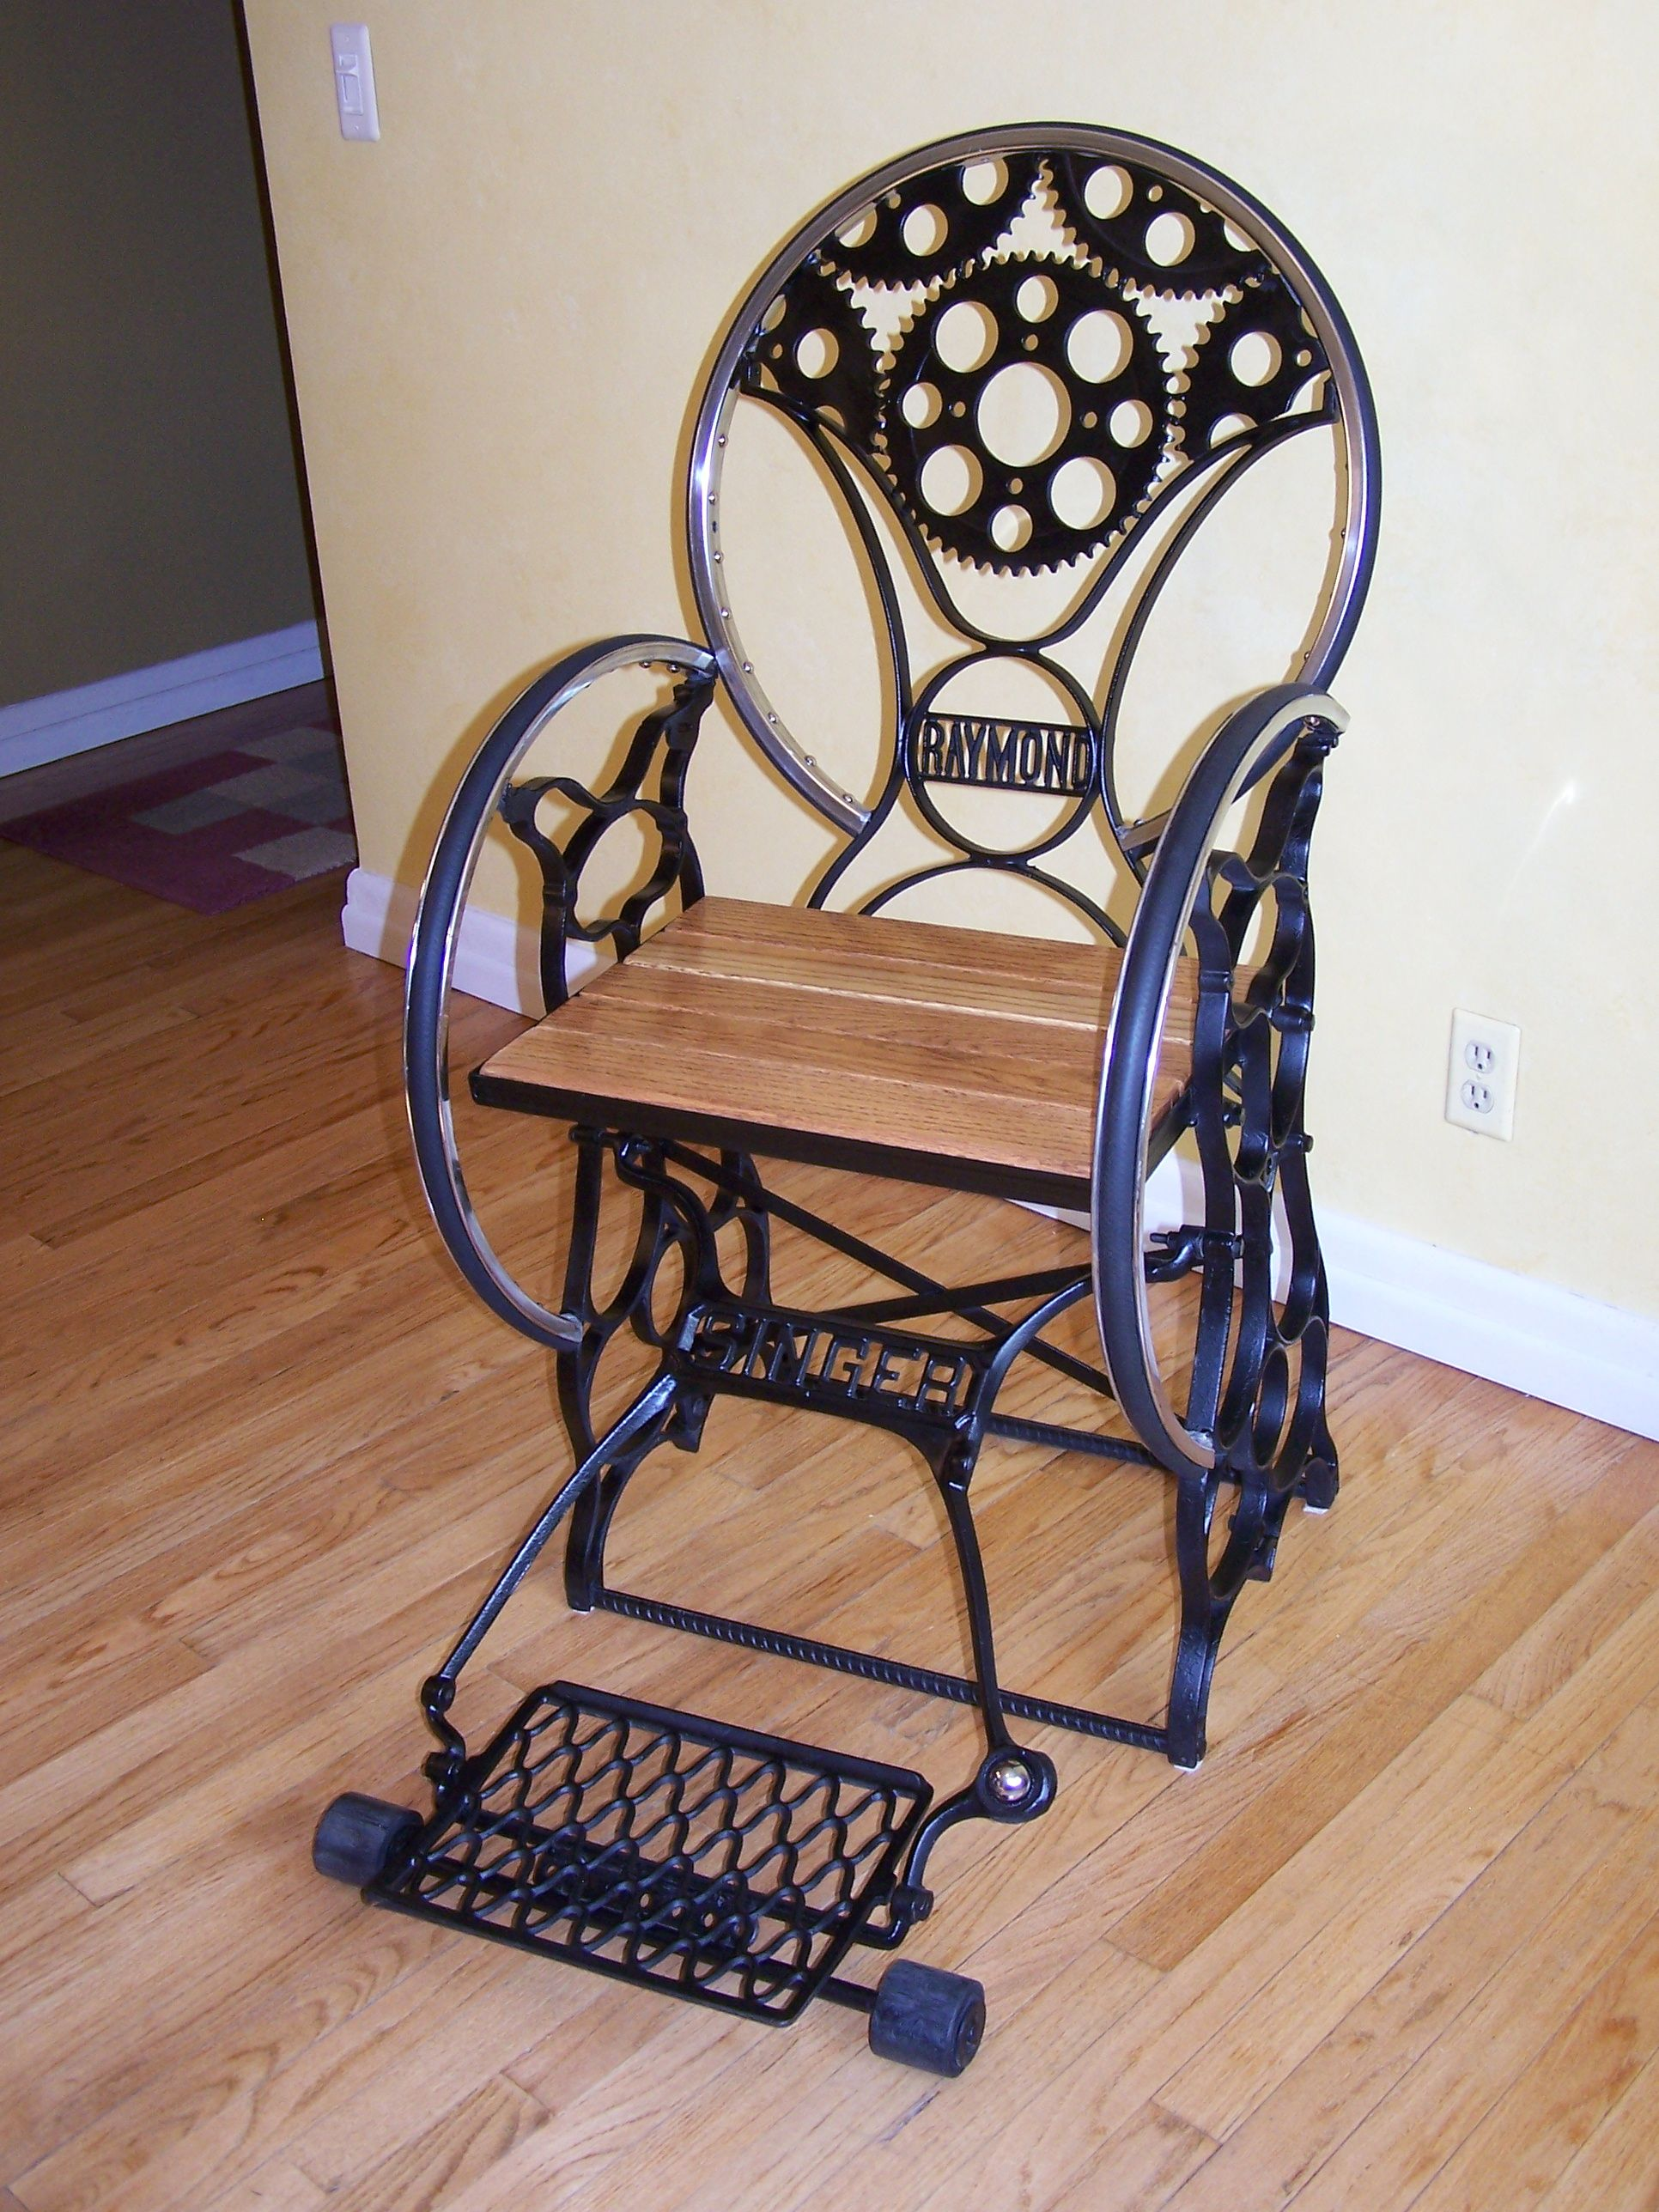 chair steel base with wheels exercise ball desk reviews custom fabricated steampunk cast iron sewing